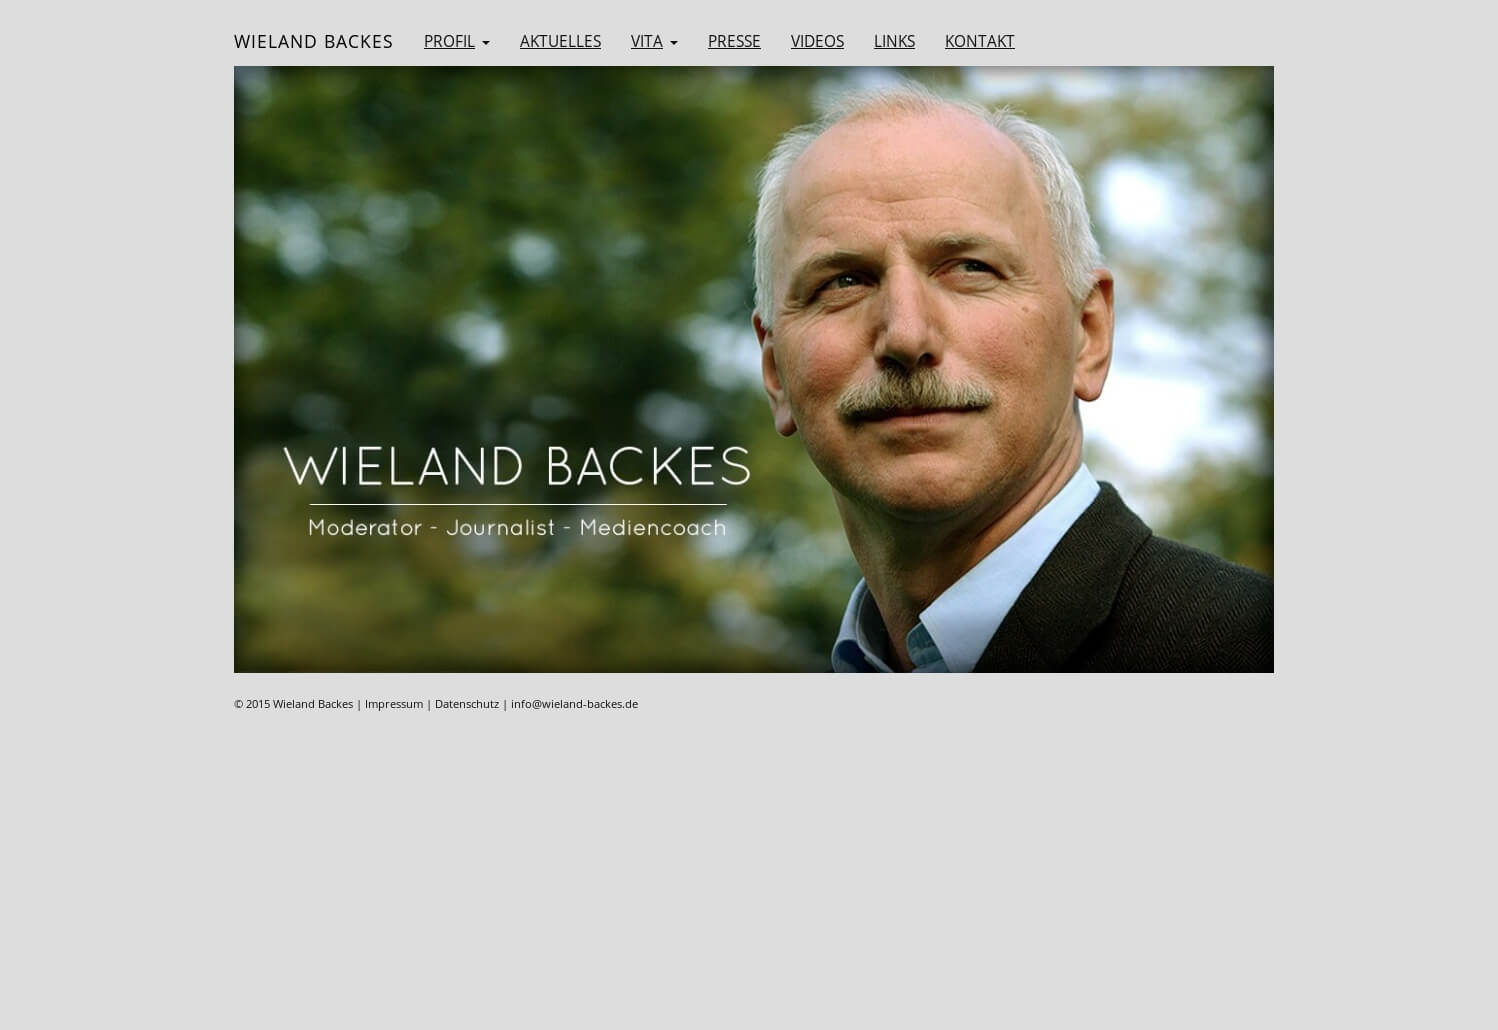 Referenzprojekt: Wieland Backes